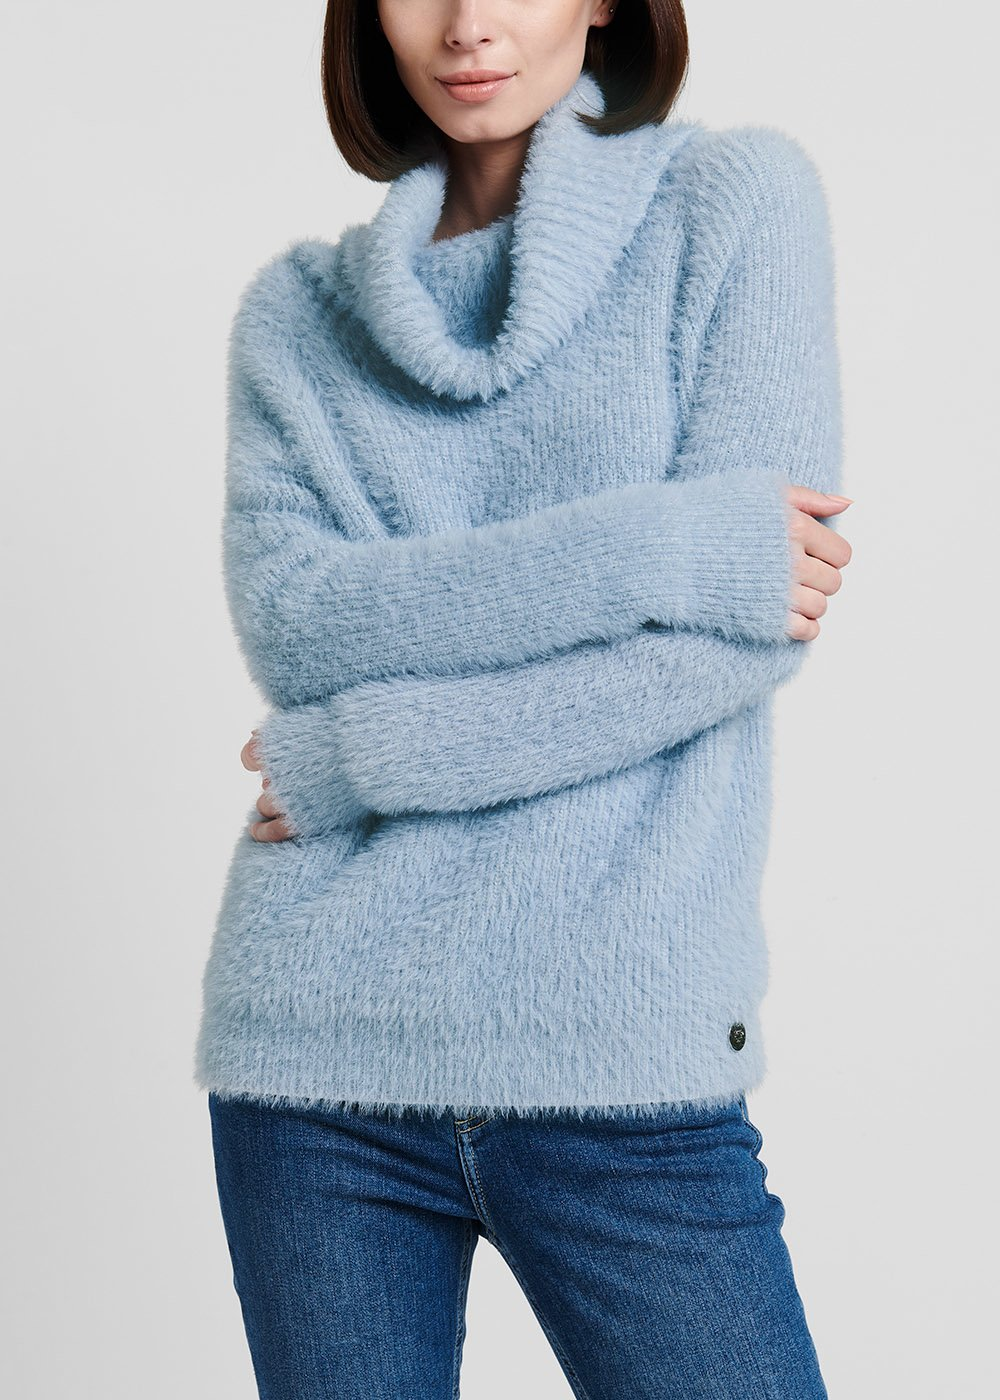 Material - coloured turtleneck sweater in fur - effect fabric - Fog - Woman